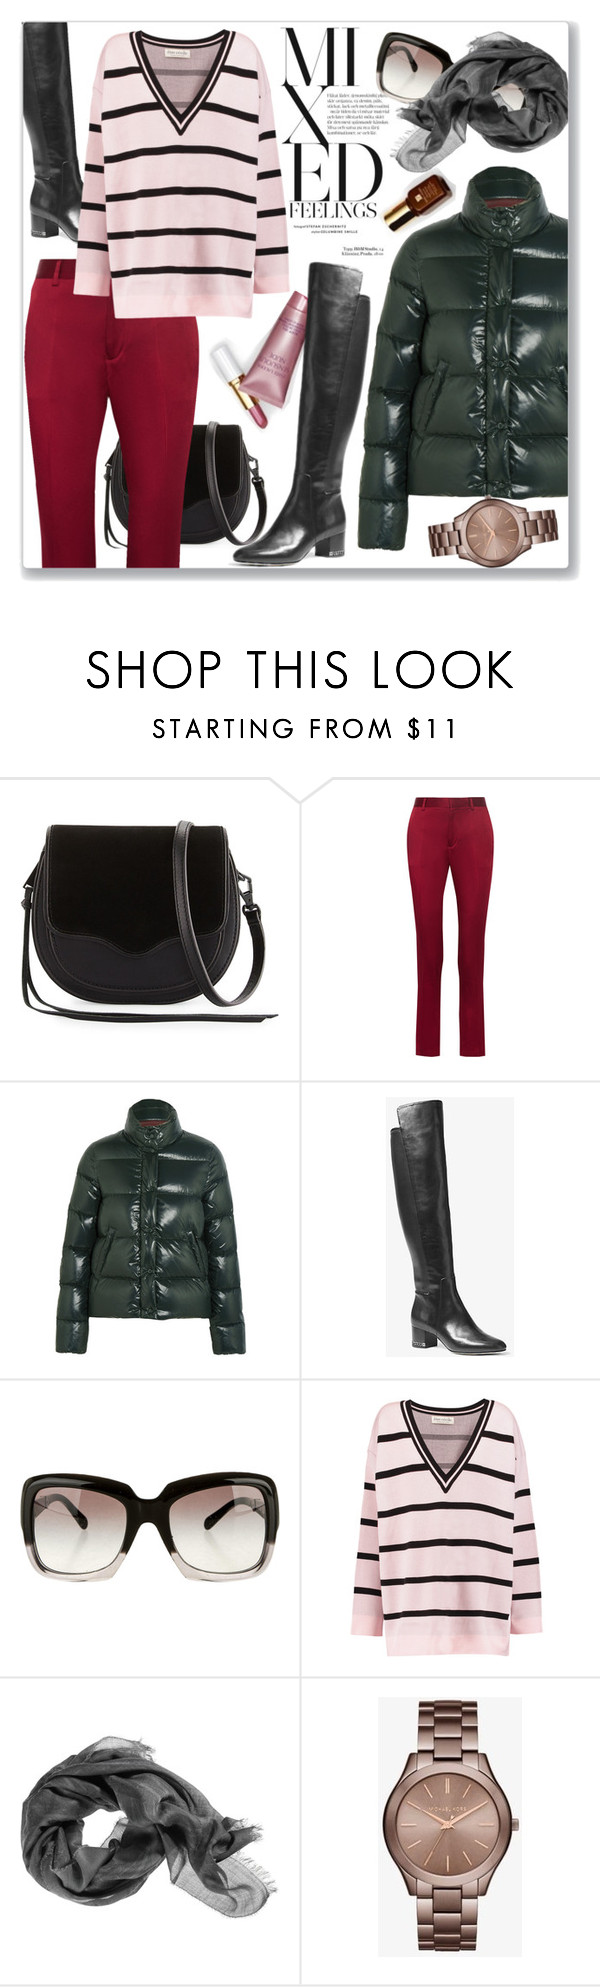 """""""Casual winter style"""" by cilita-d ❤ liked on Polyvore featuring Rebecca Minkoff, Haider Ackermann, Moncler, MICHAEL Michael Kors, Chanel, Être Cécile and Michael Kors"""